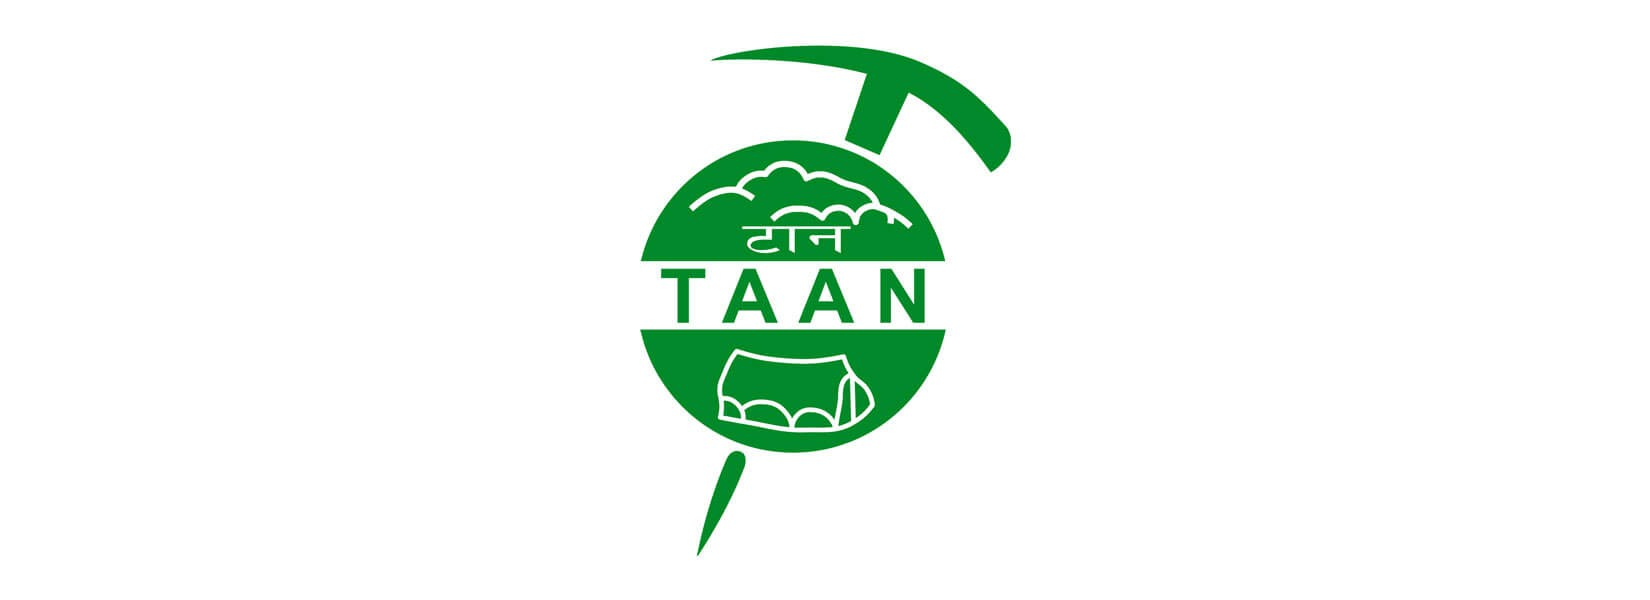 TAAN-Trekking Agency's Association of Nepal 2019/2021